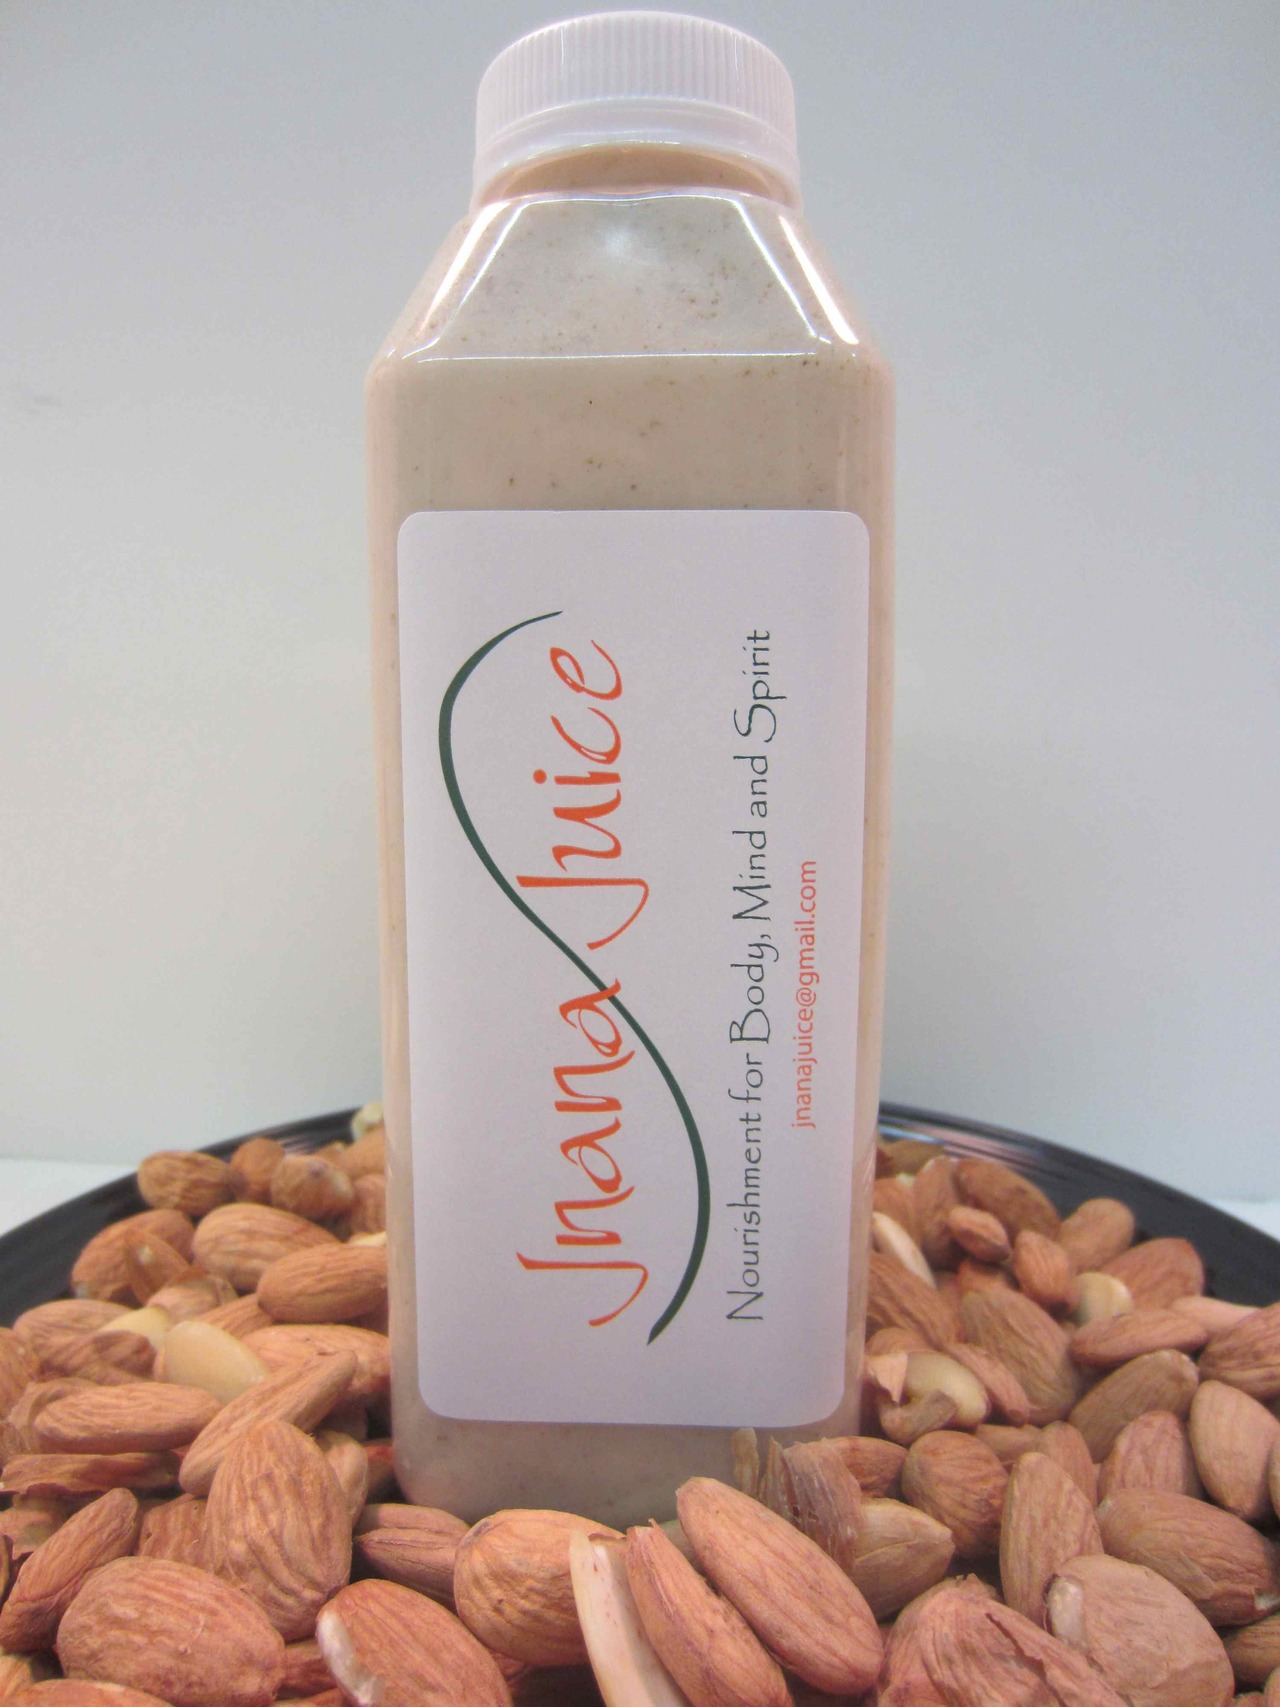 Grab a Jnana Organic's Blended Chia Almond Mylk for energy on the go!